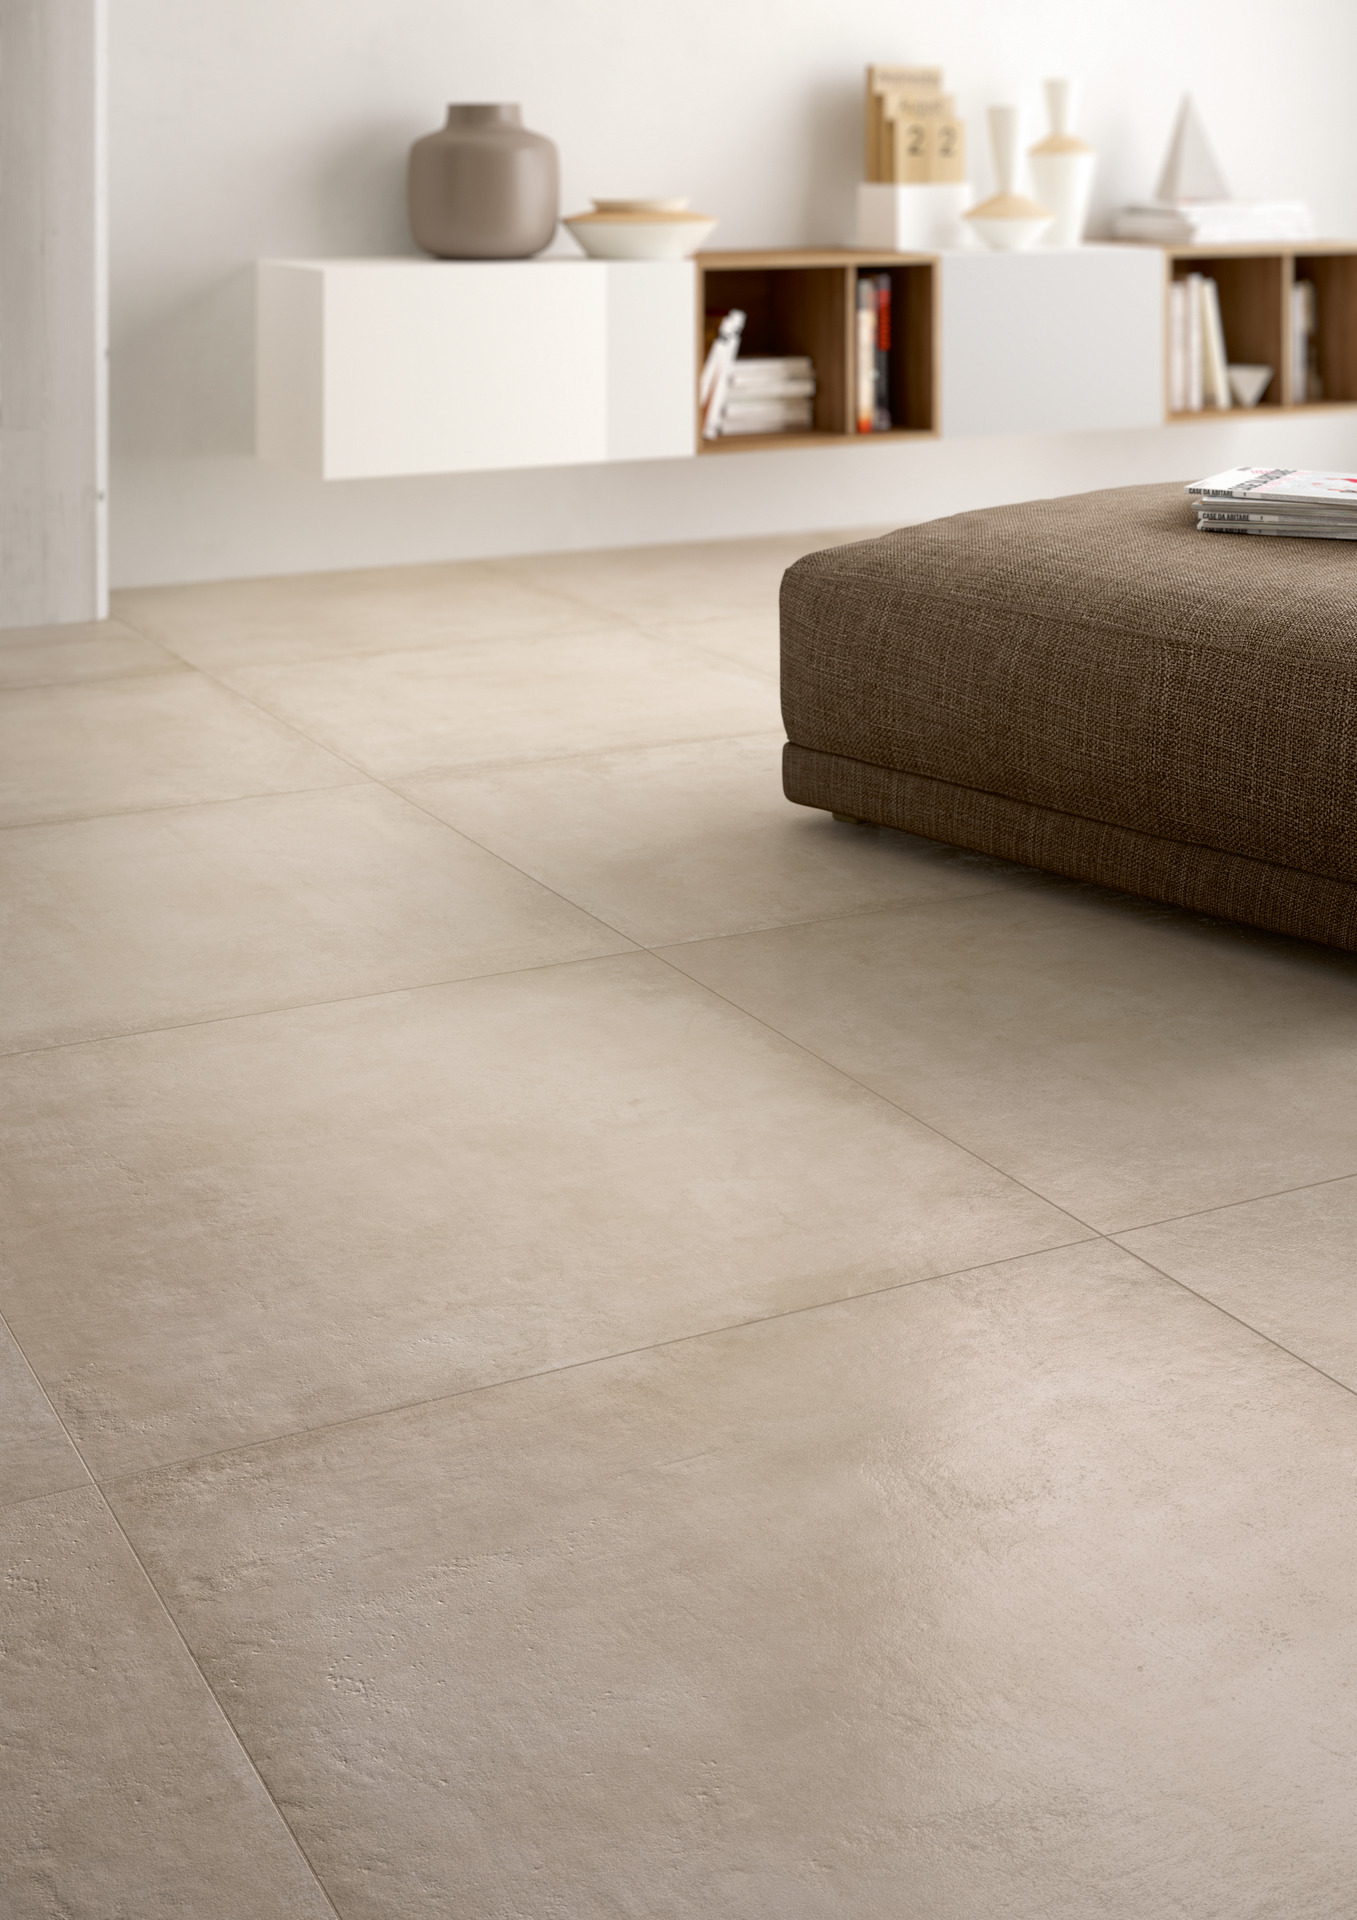 Clays terracotta effect porcelain stoneware marazzi for Carrelage 60x120